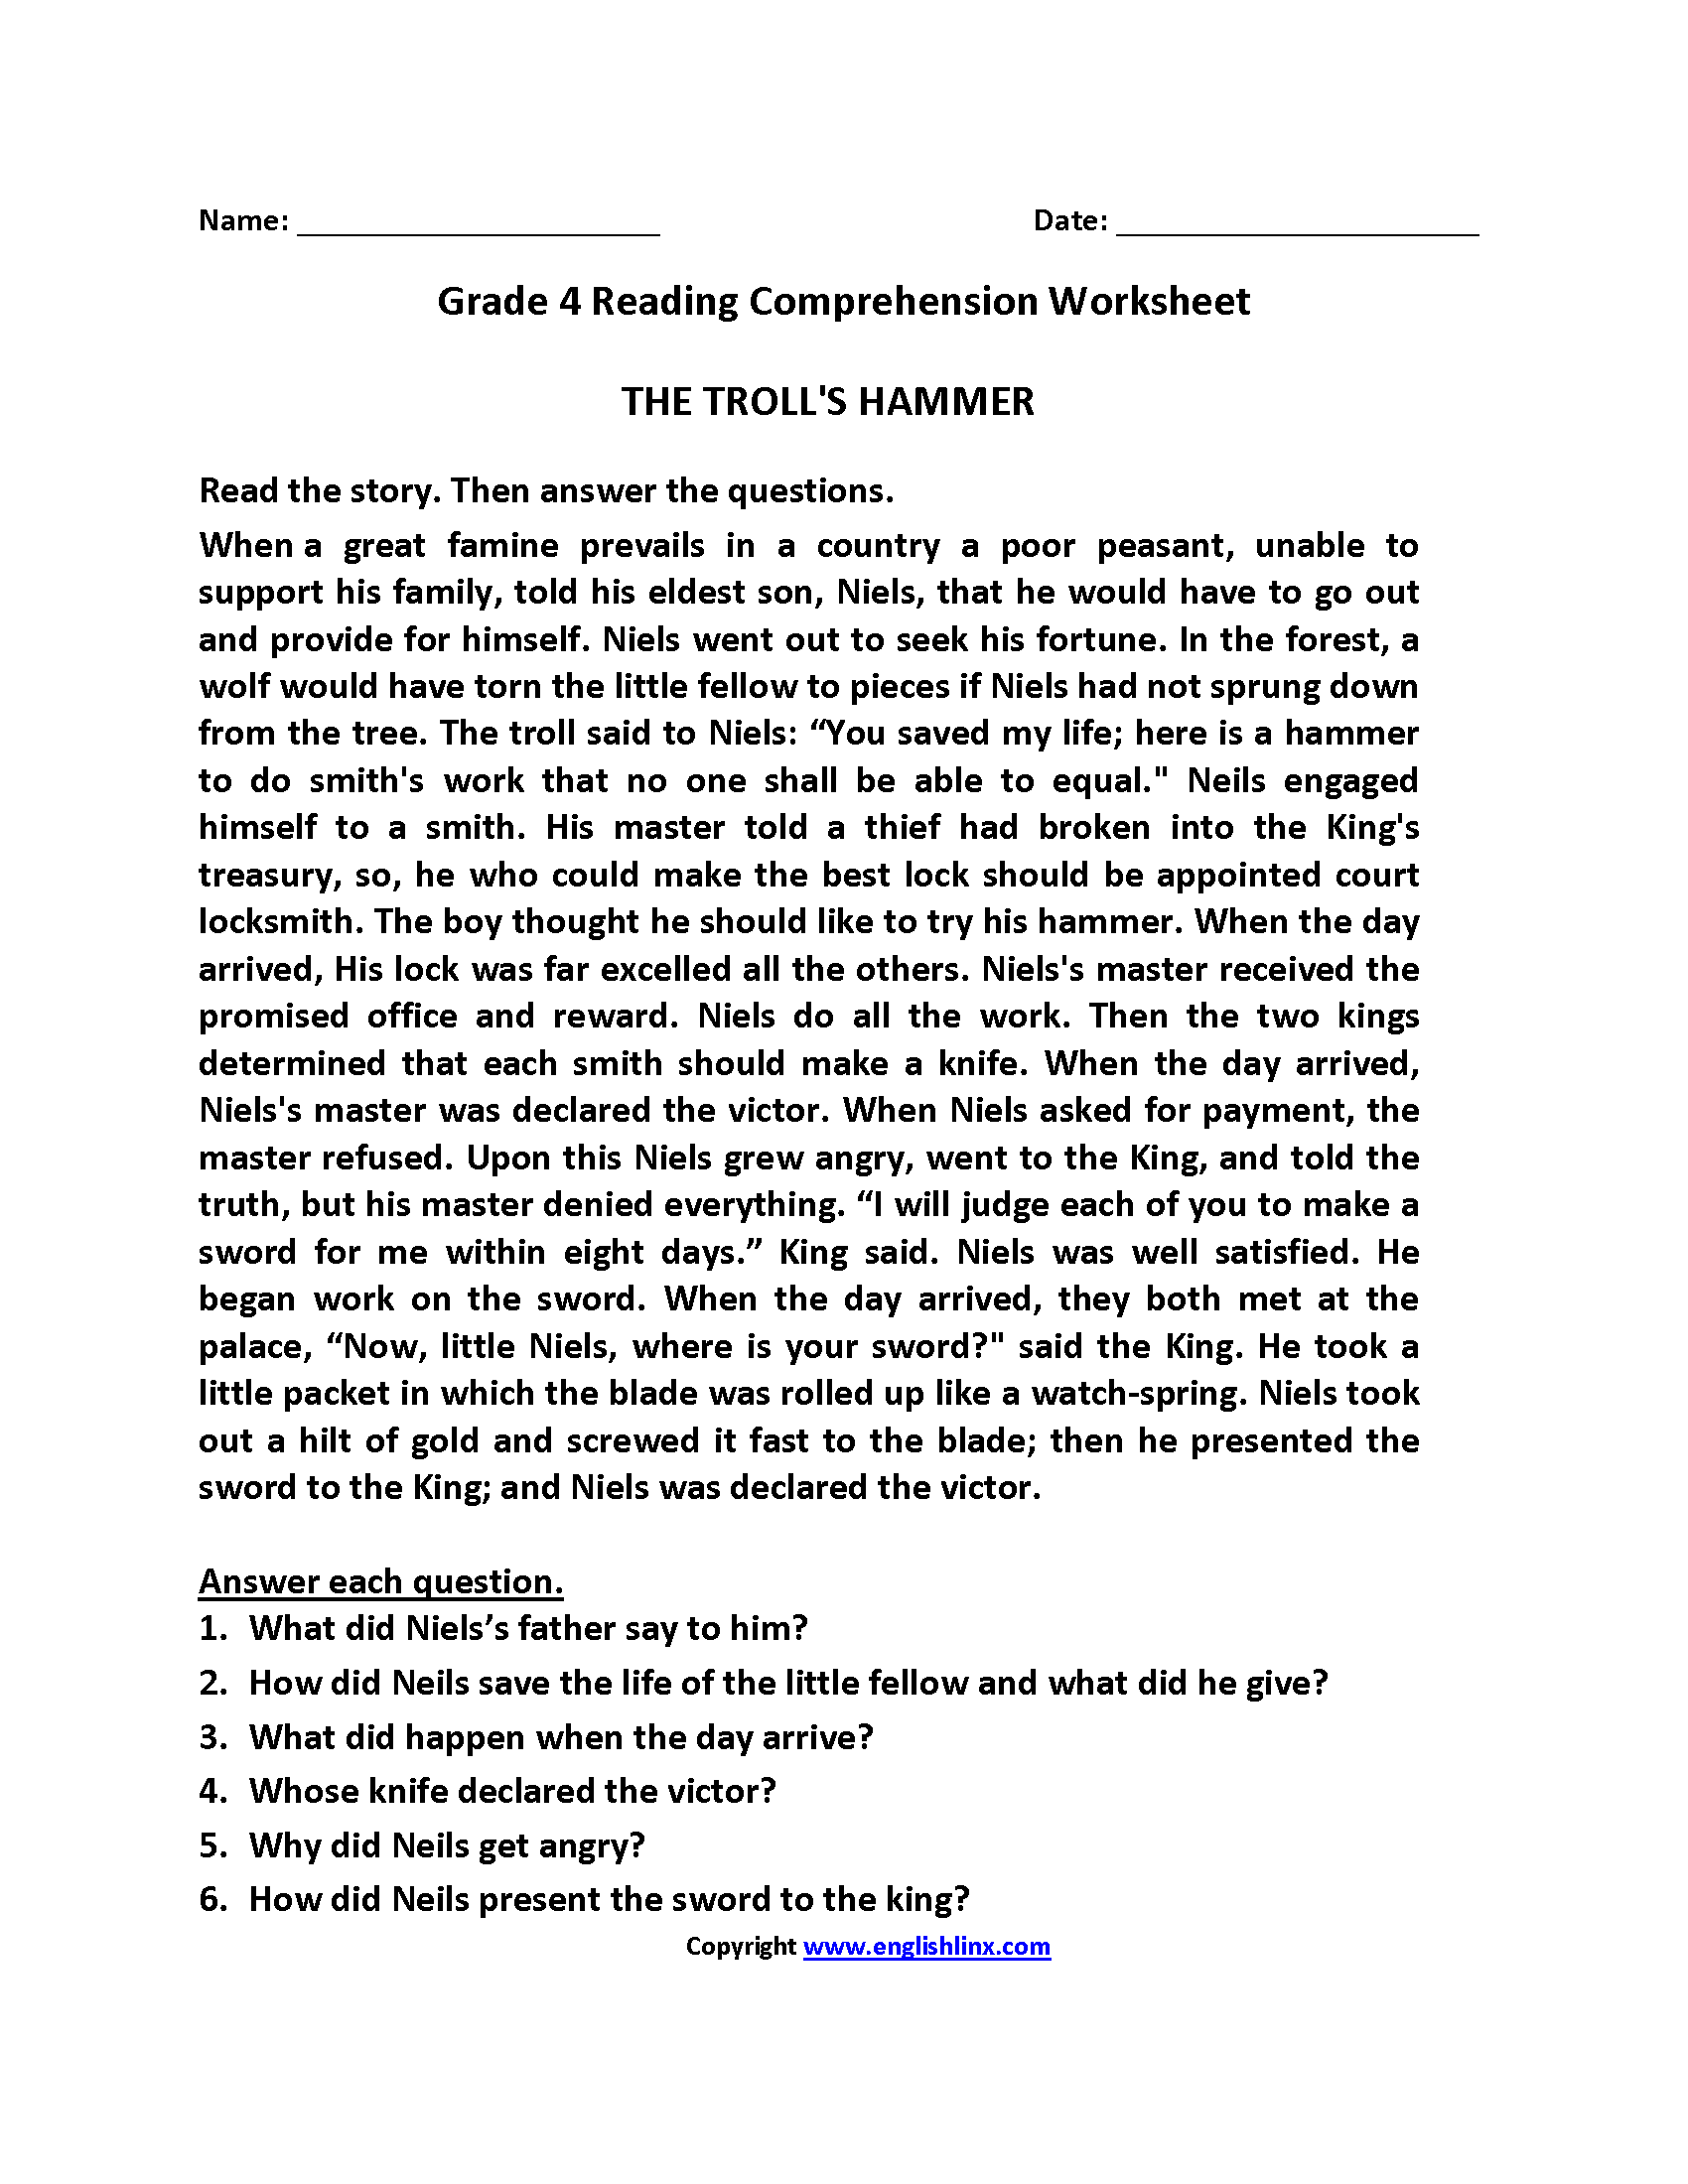 Comprehension Activities For 4th Grade